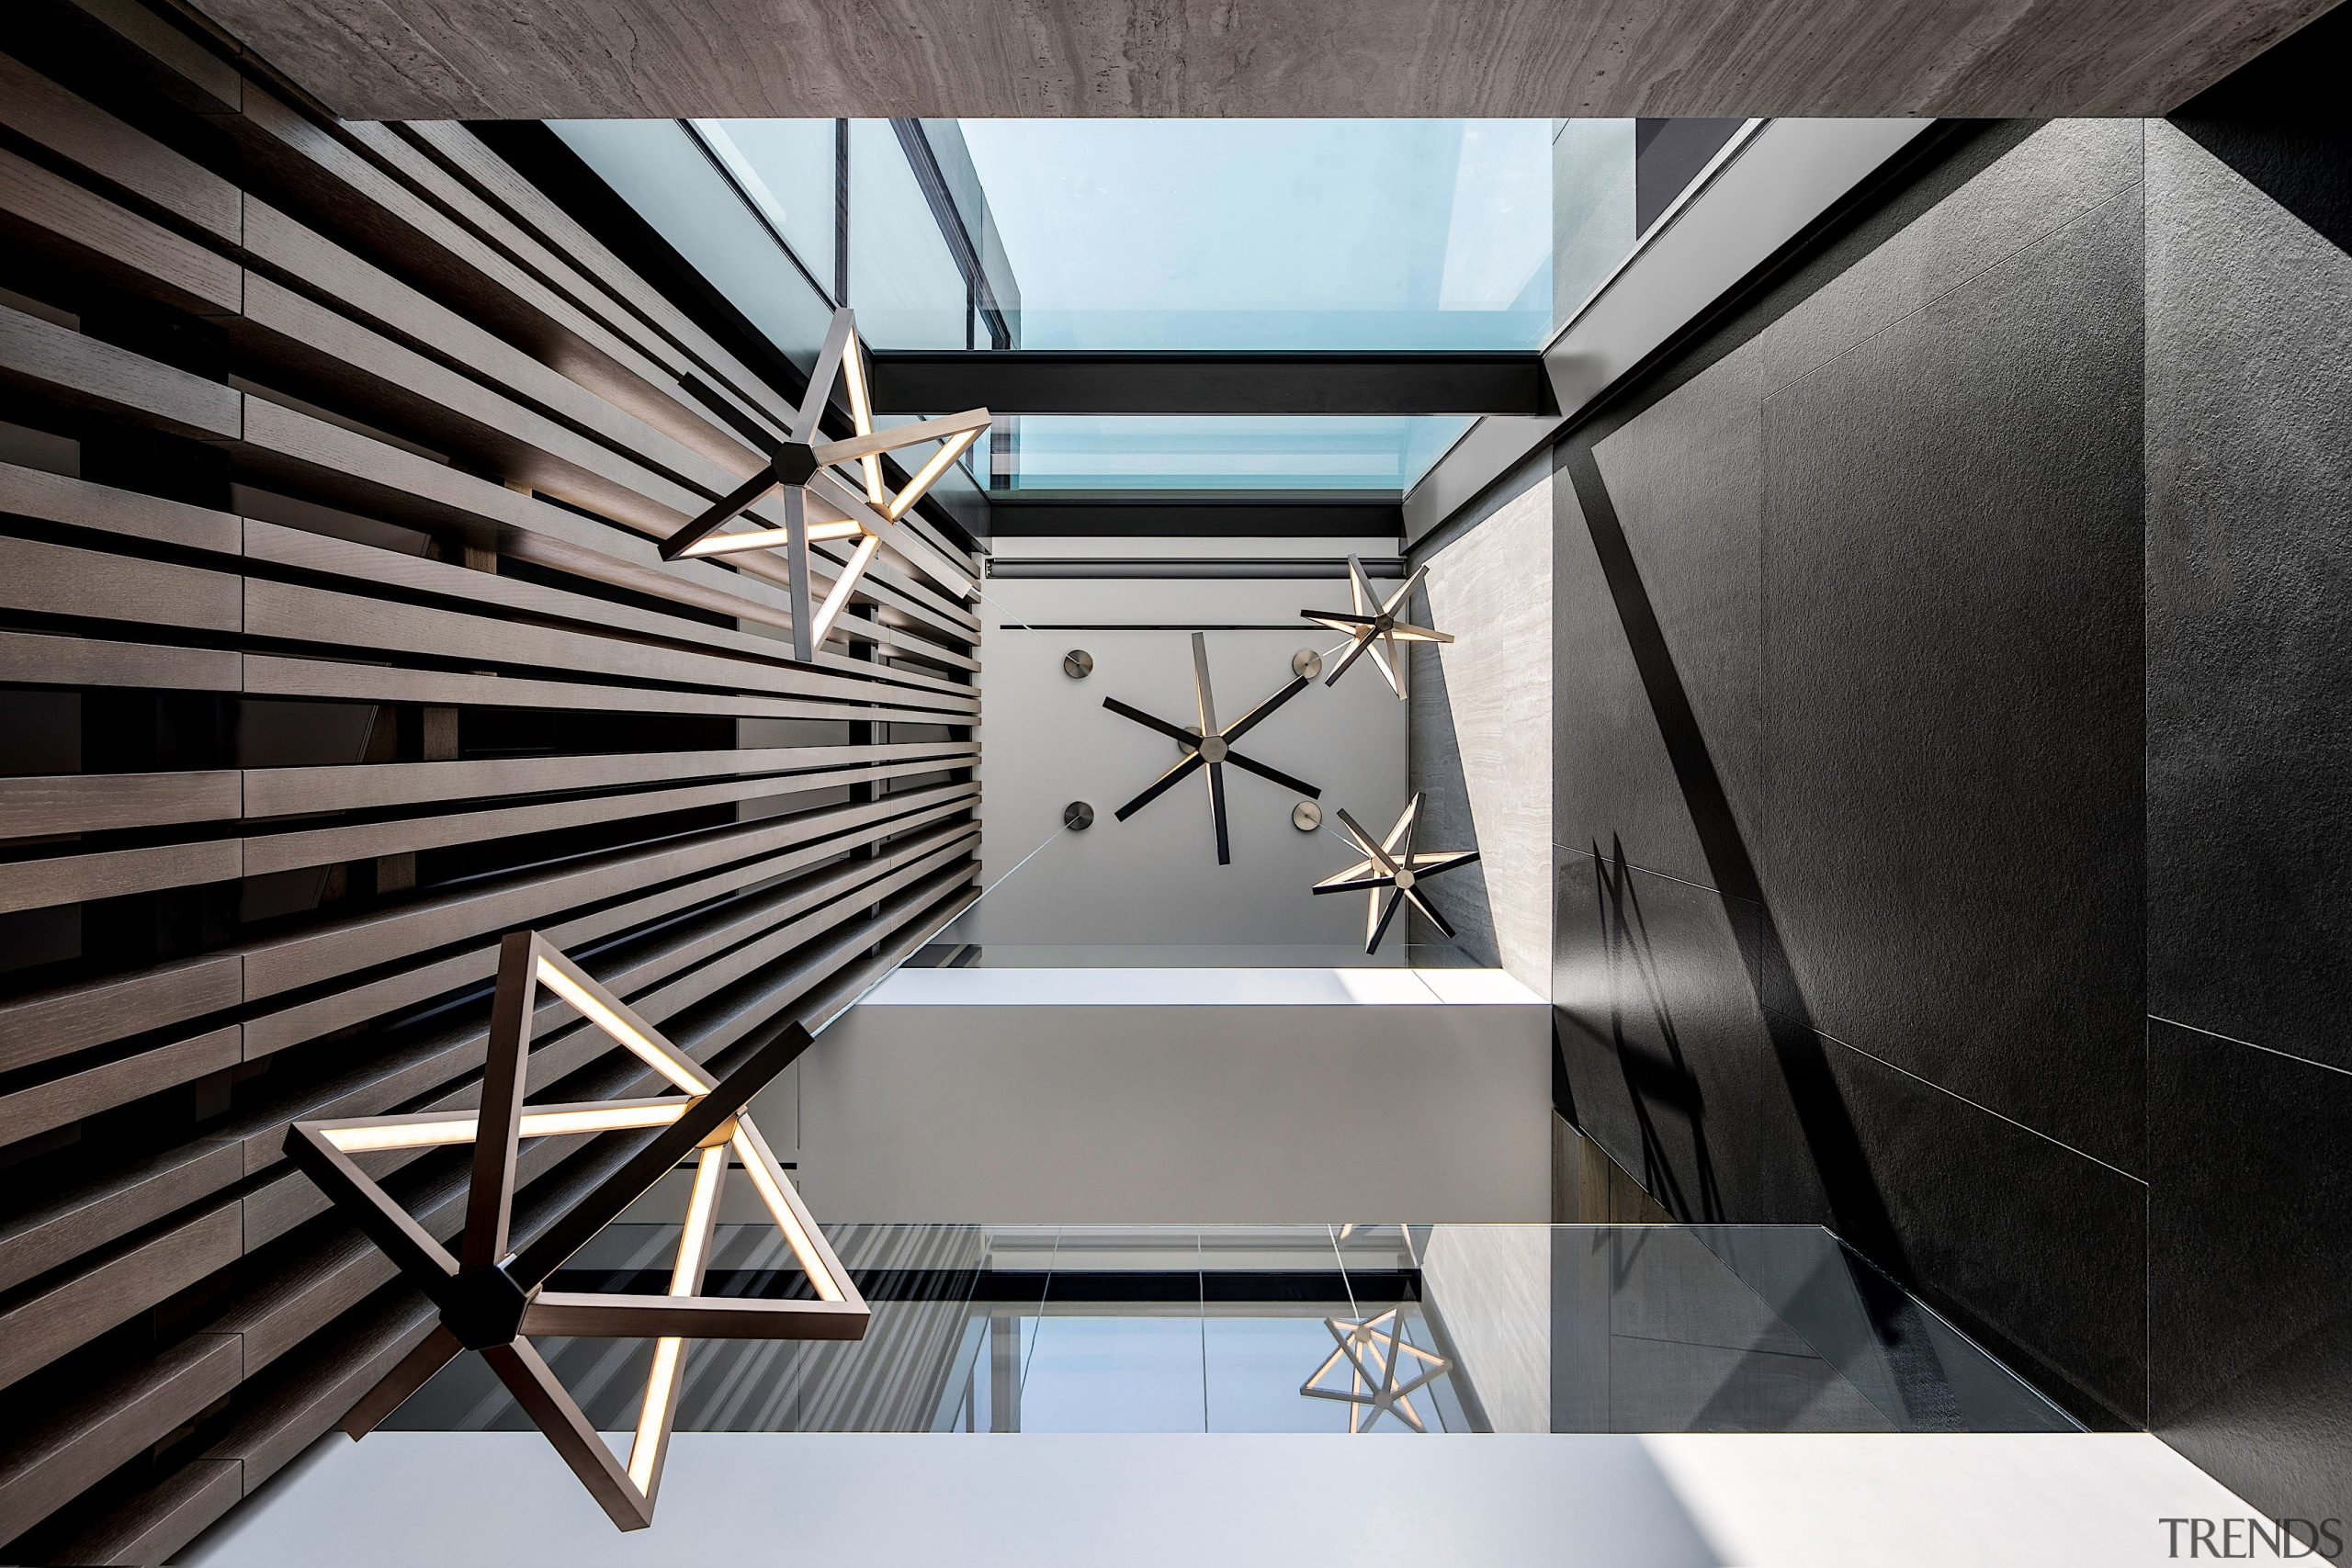 The entryway features a triple-volume atrium and graphic